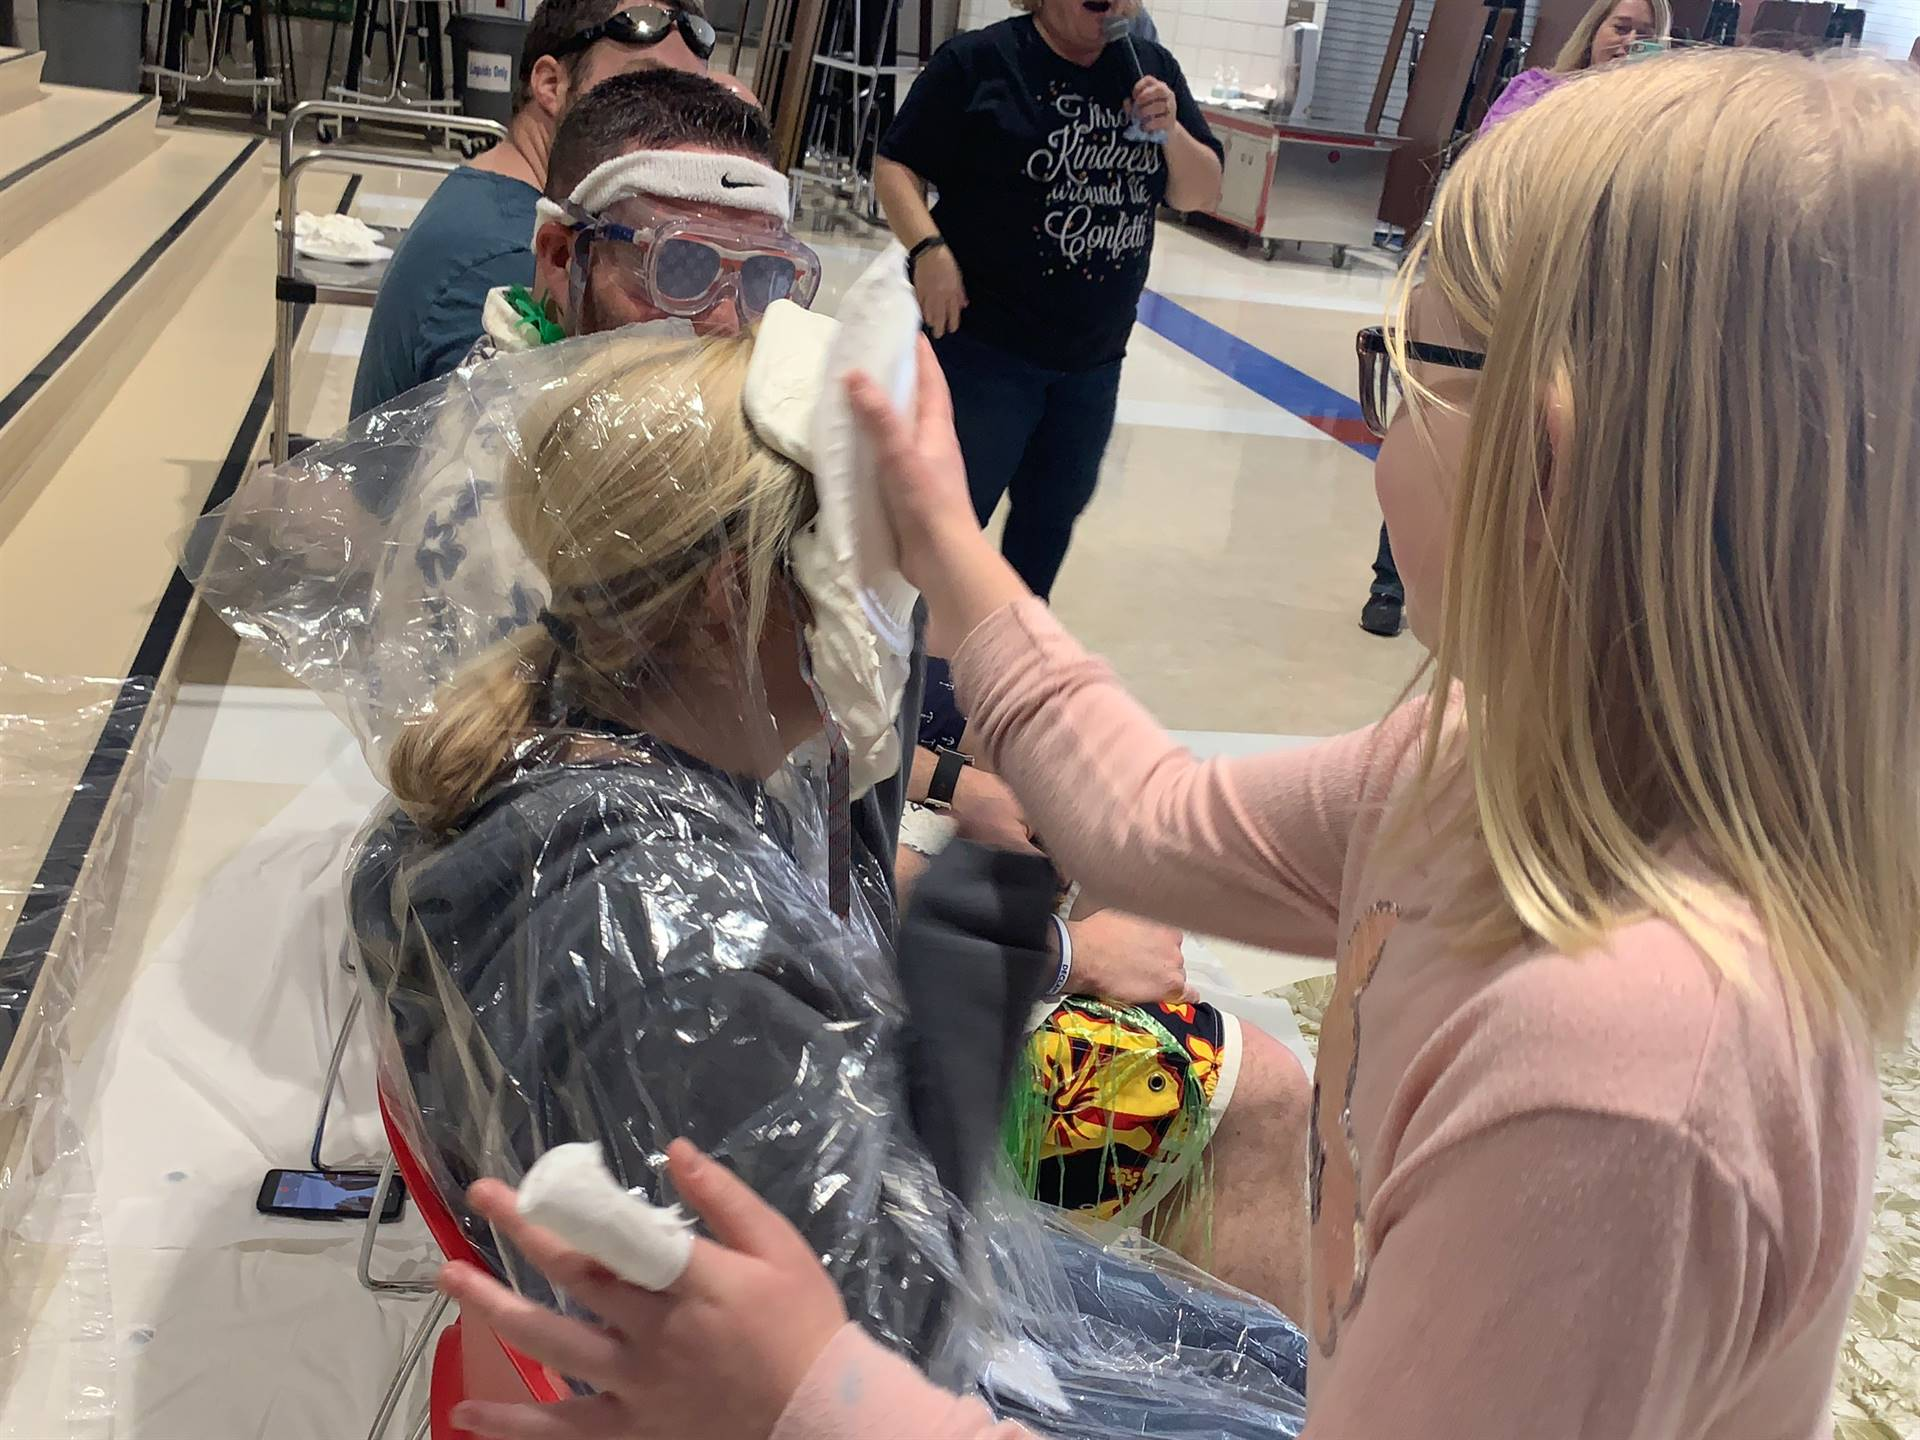 Mrs. Langston gets a pie in the face during the Pennies for Patients fundraiser